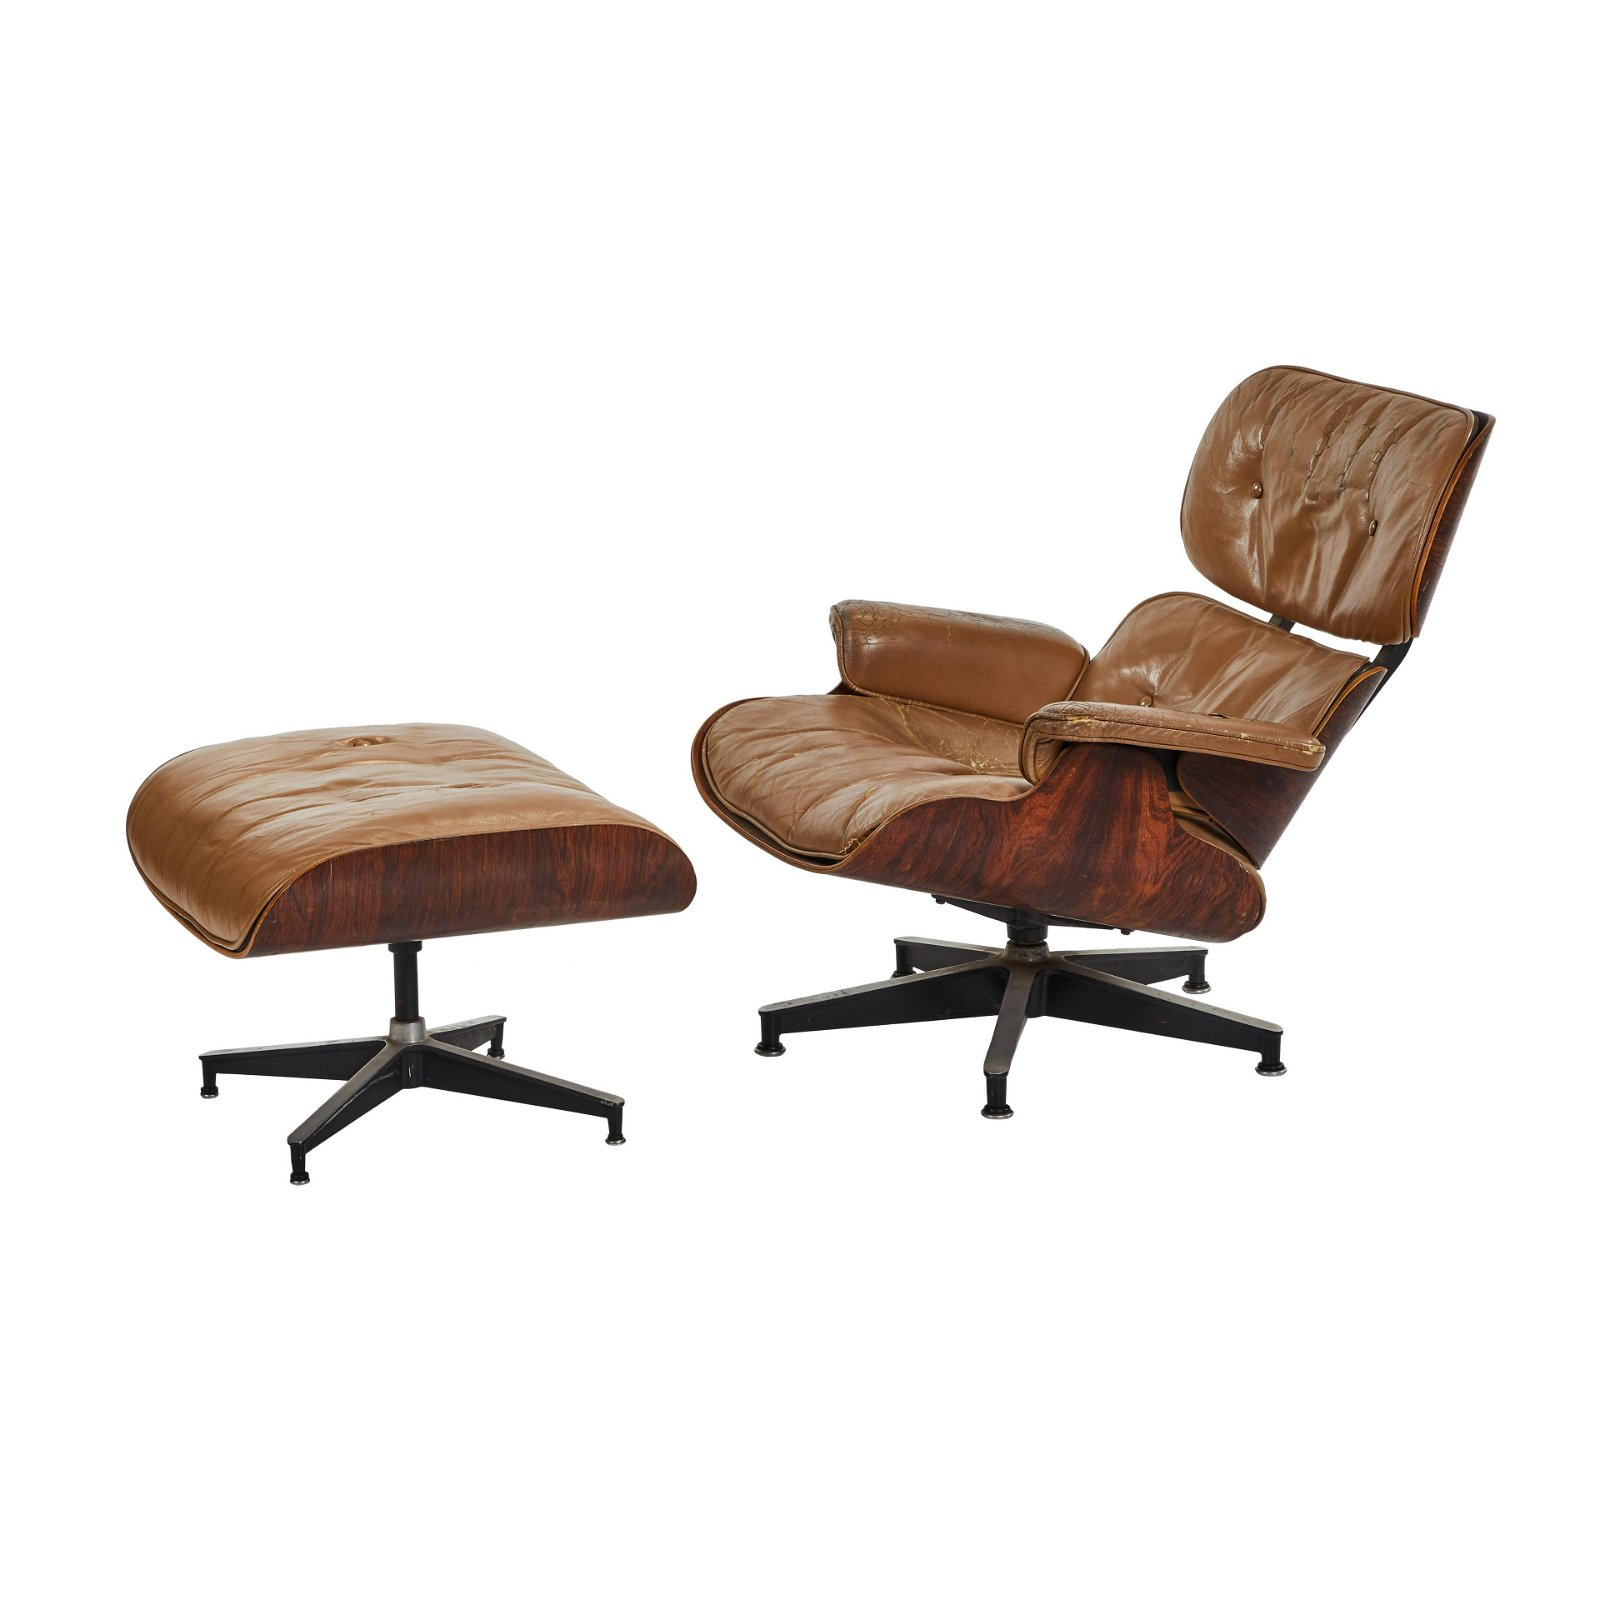 Charles Eames Lounge 670 Chair and Ottoman (2)